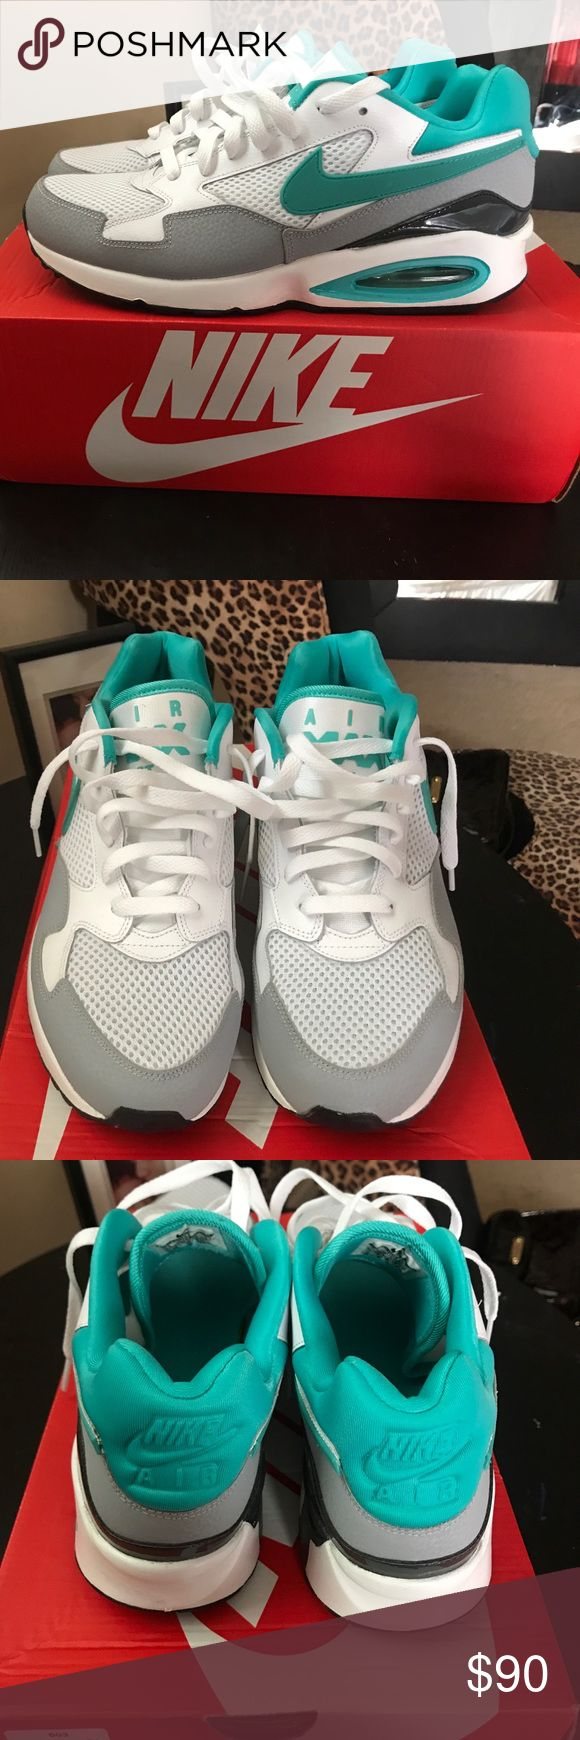 Women Sneakers White, Gray and Teal Air Max, women sneakers size 10 never worn Nike Shoes Sneakers